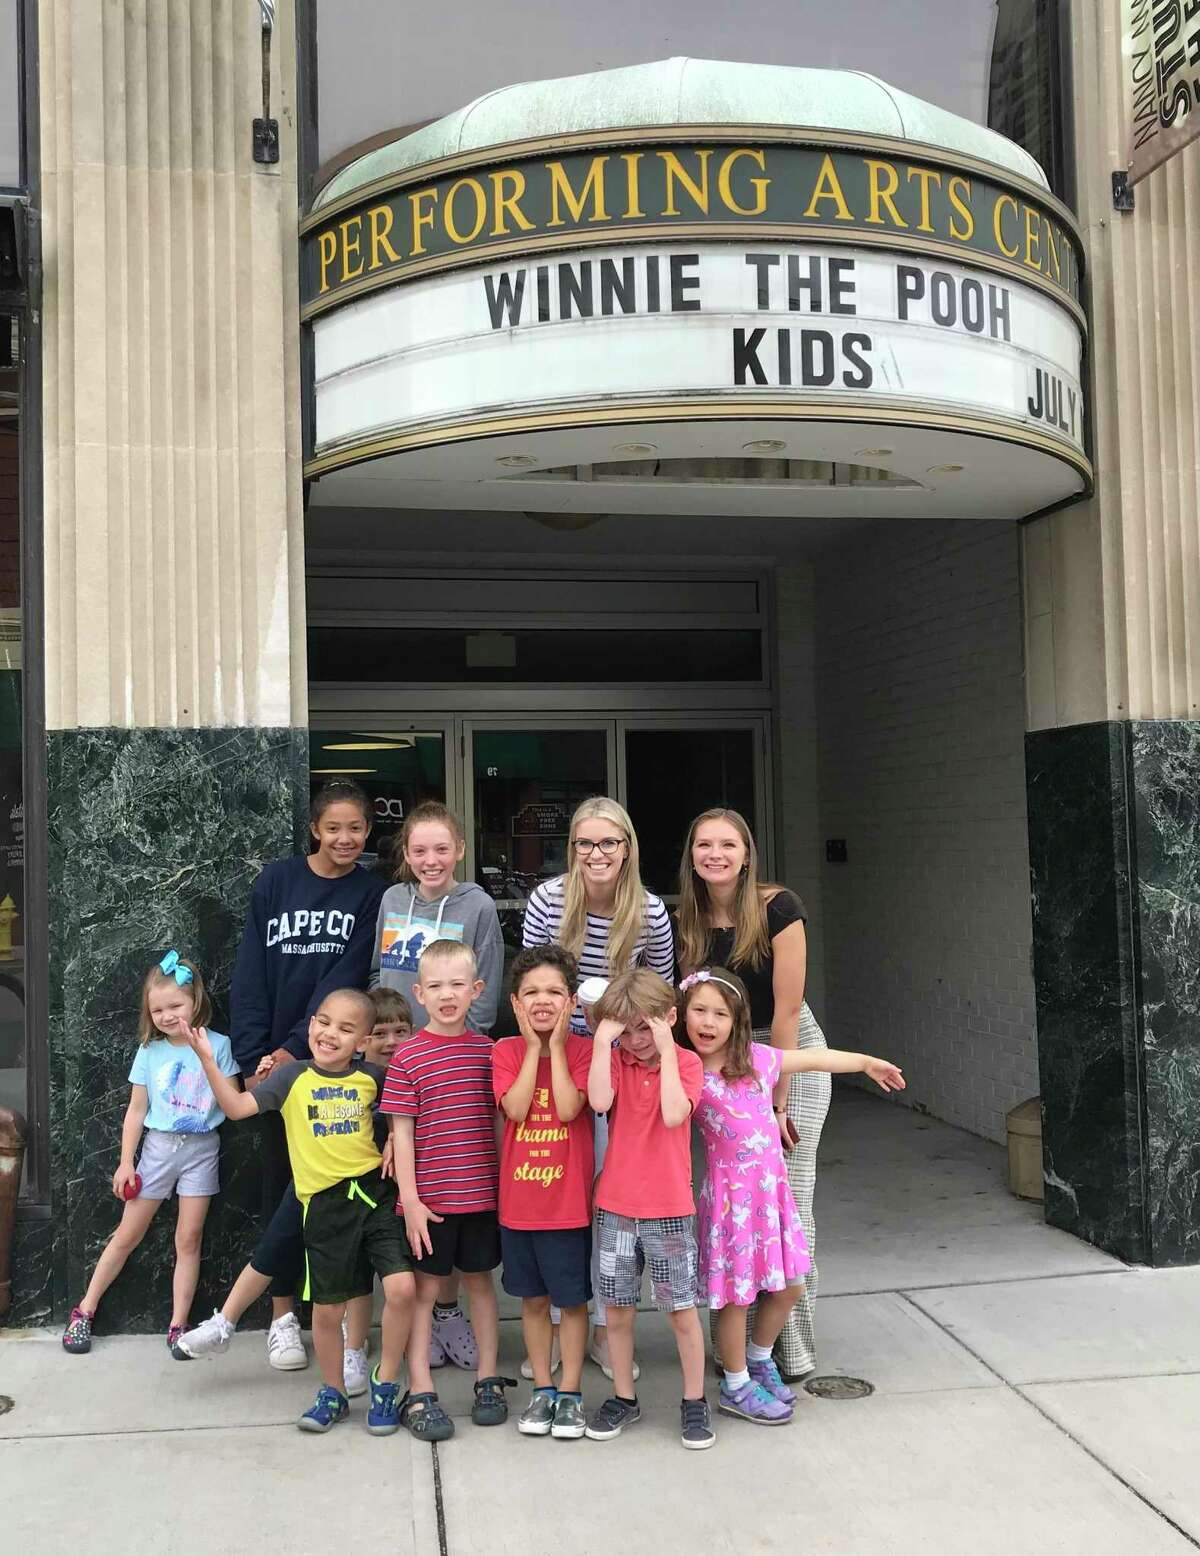 The Warner Theatre Center for Arts Education is holding its summer arts camp this year, after it was canceled by the pandemic in 2020.